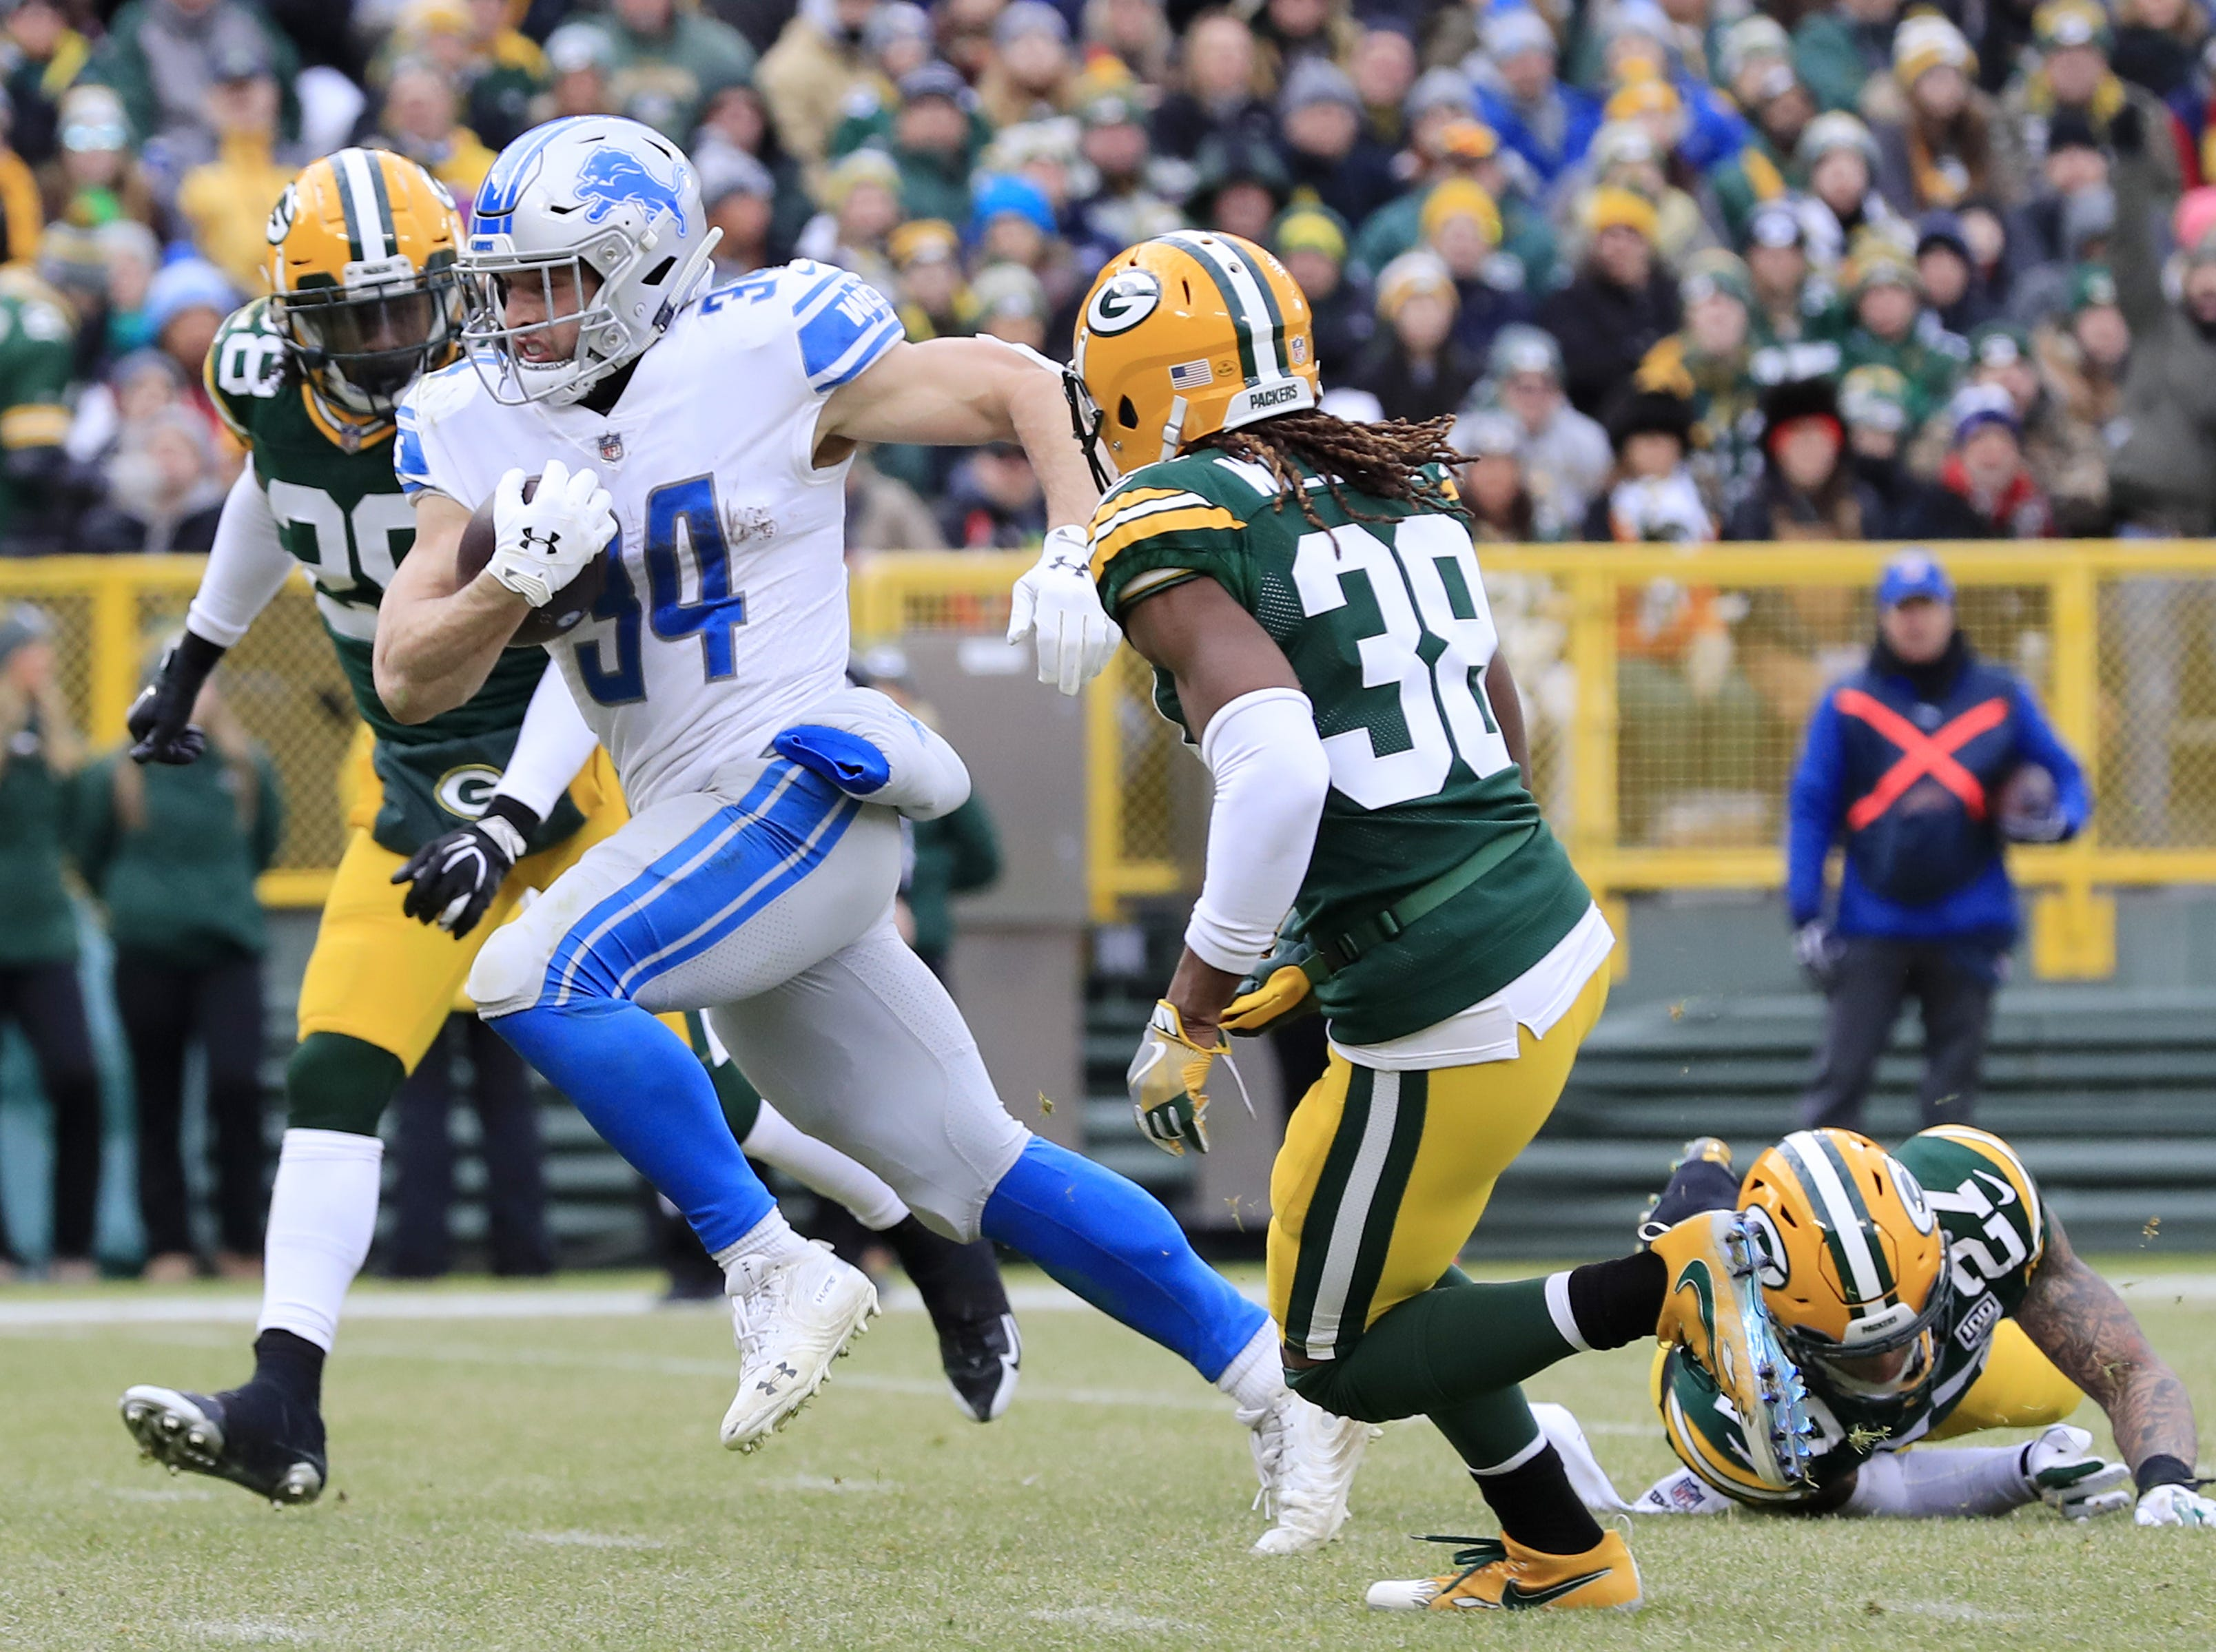 Detroit Lions running back Zach Zenner (34) rushes for a touchdown in the second quarter against the Green Bay Packers at Lambeau Field on Sunday, December 30, 2018 in Green Bay, Wis. Adam Wesley/USA TODAY NETWORK-Wis